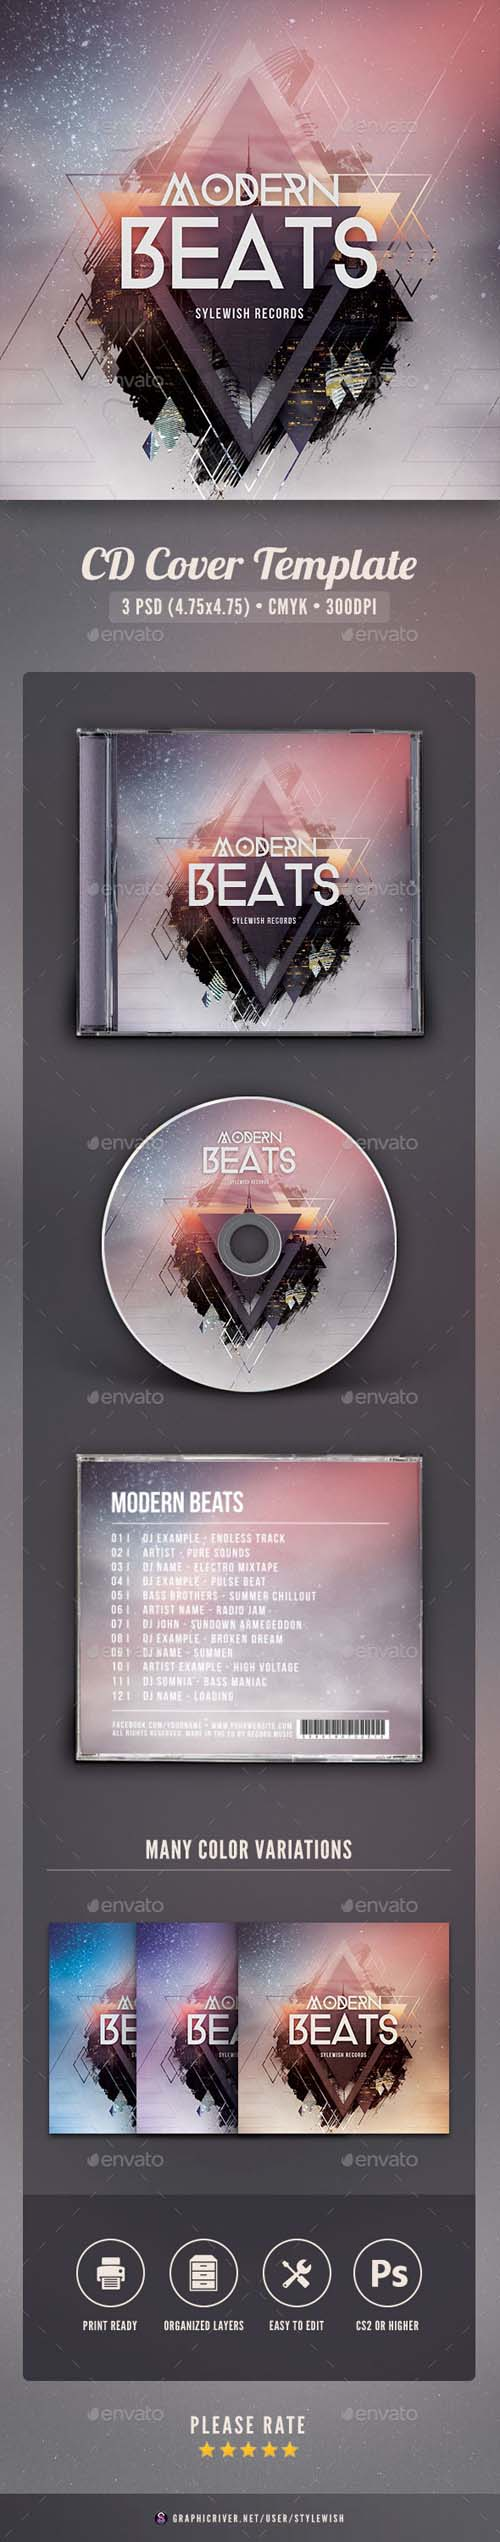 Modern Beats CD Cover Artwork 16142099